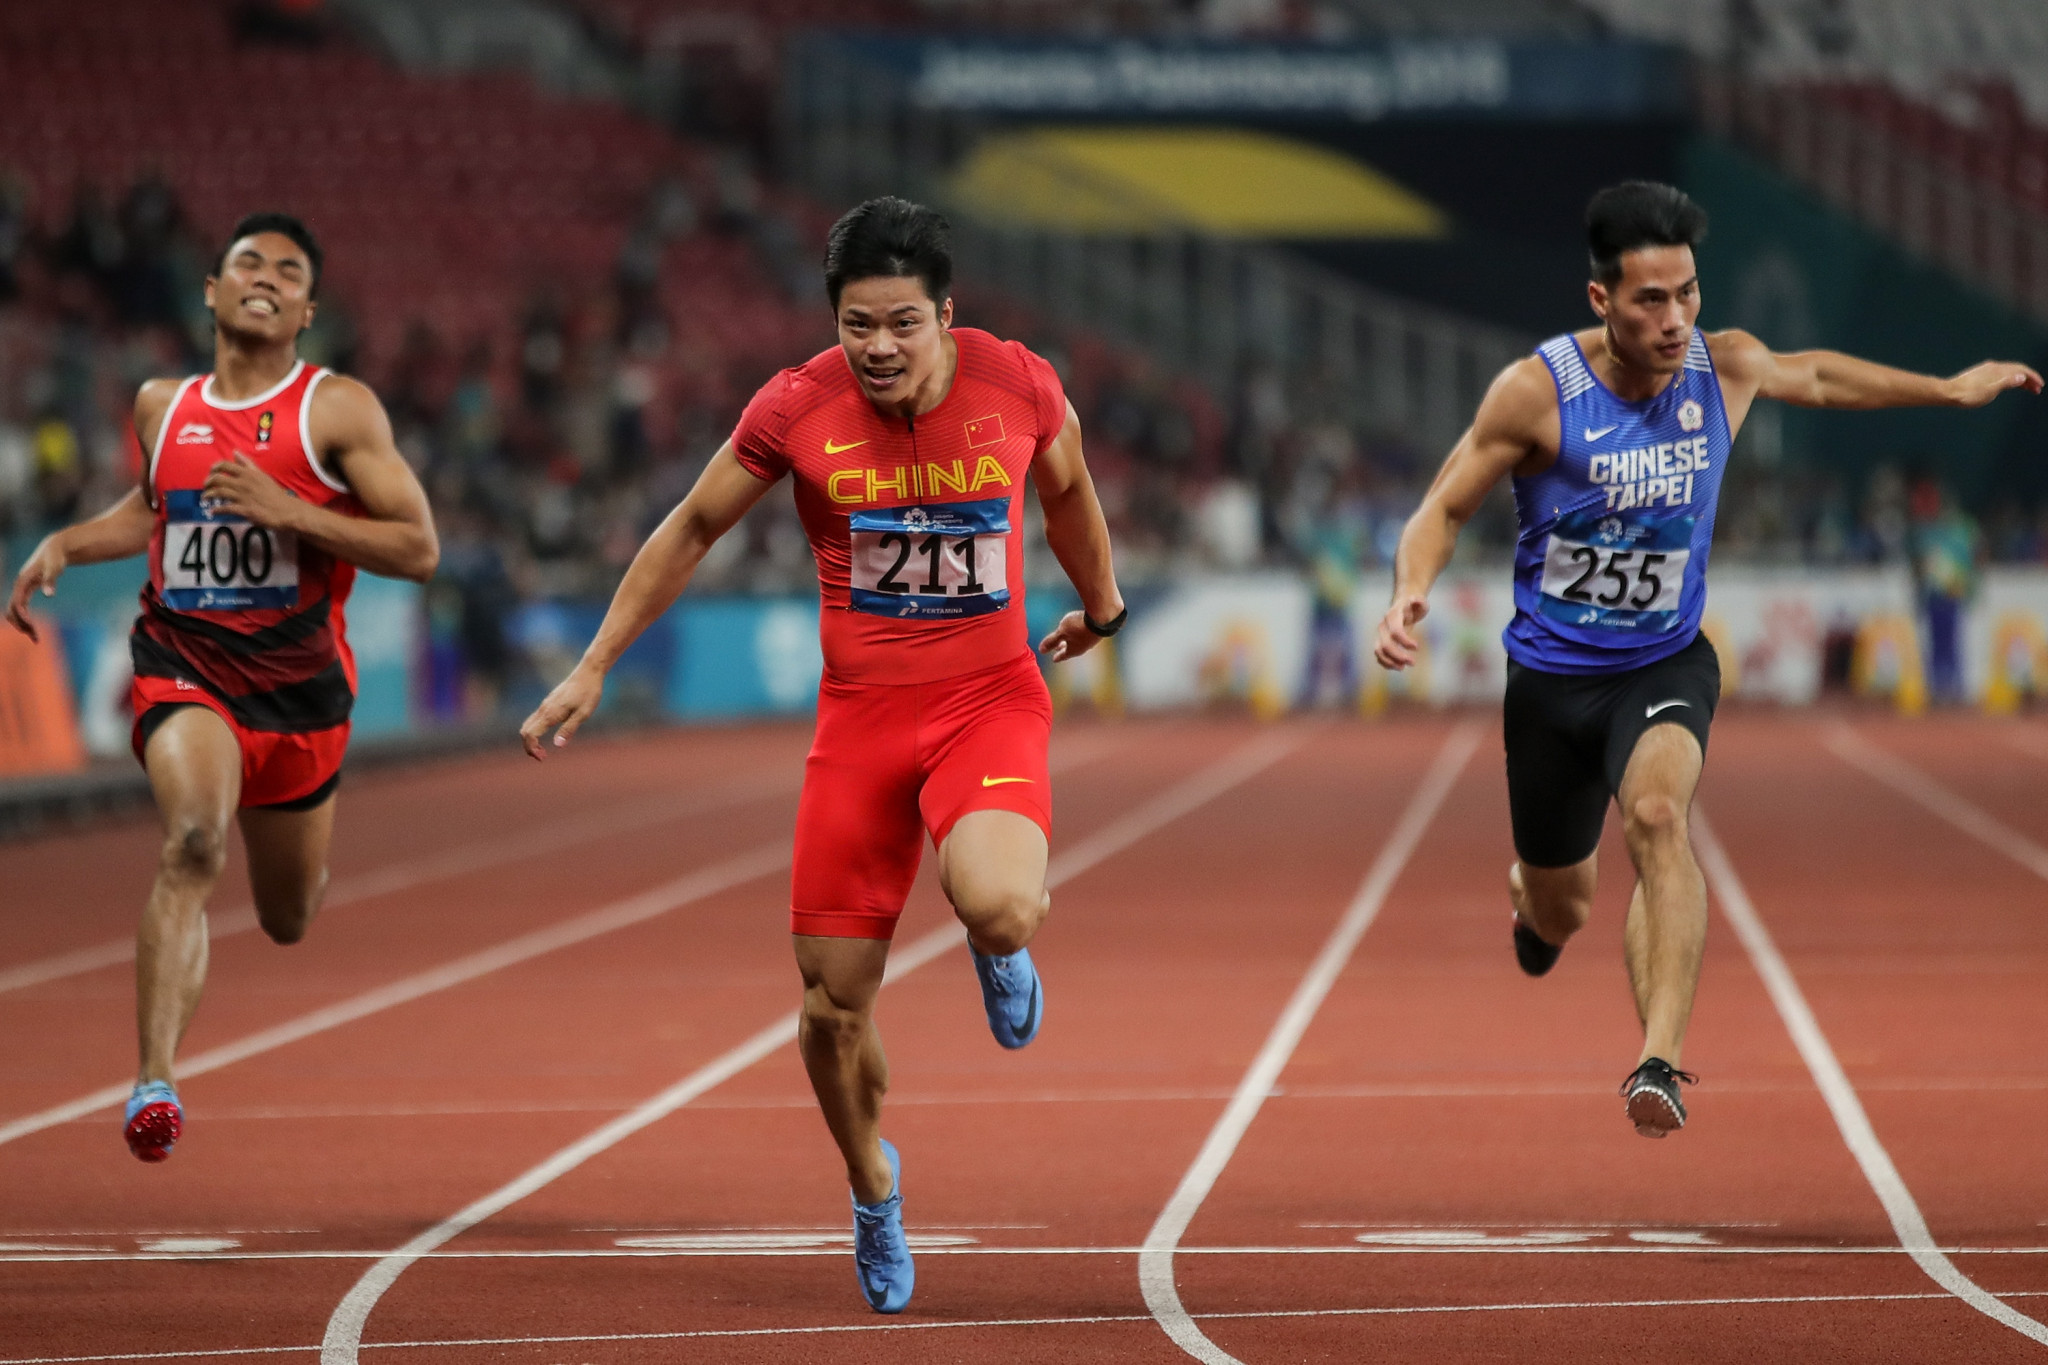 Bingtian Su won the men's 100m tonight in an Asian Games record ©Getty Images